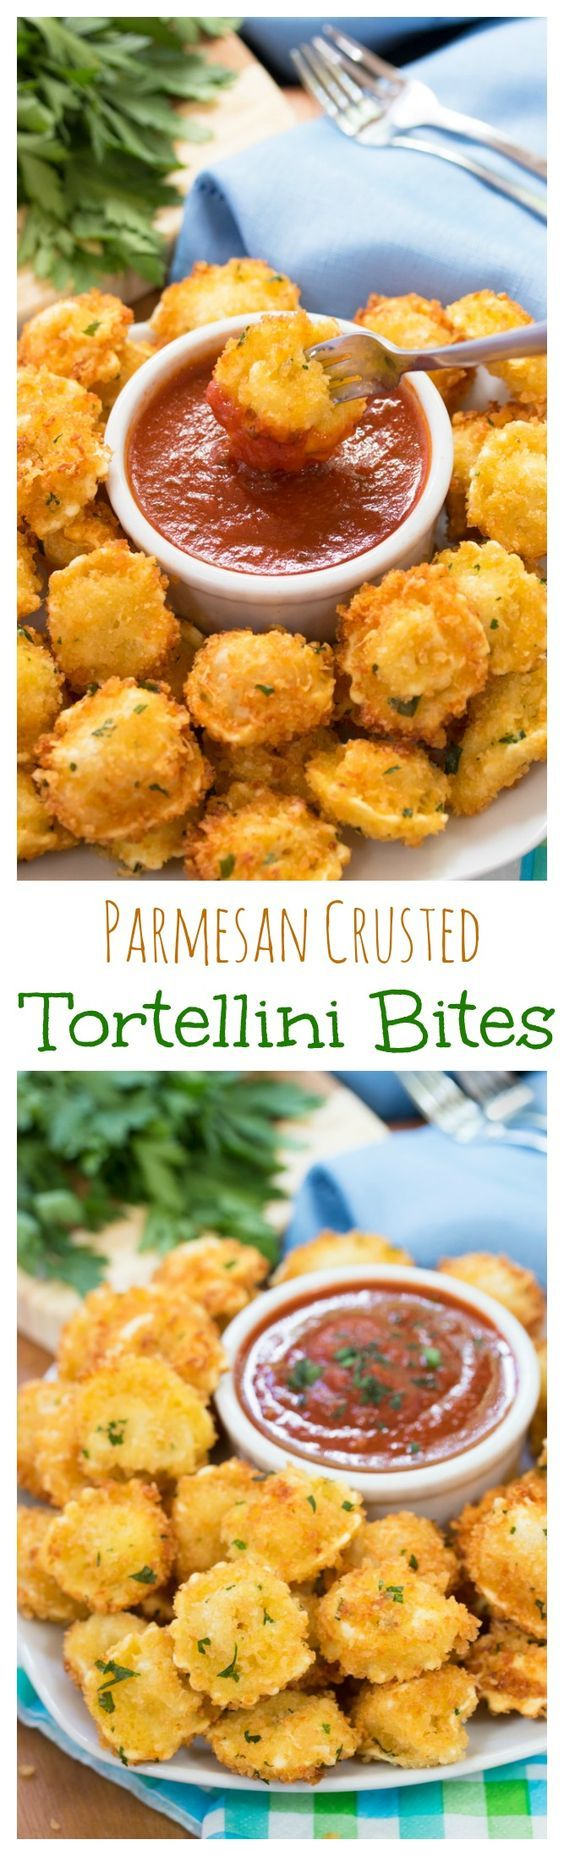 Parmesan Crusted Tortellini Bites: Parmesan crusted cheese-filled tortellini dipped in warm marinara sauce  | #Appetizers #CleanEating  Sherman Financial Group